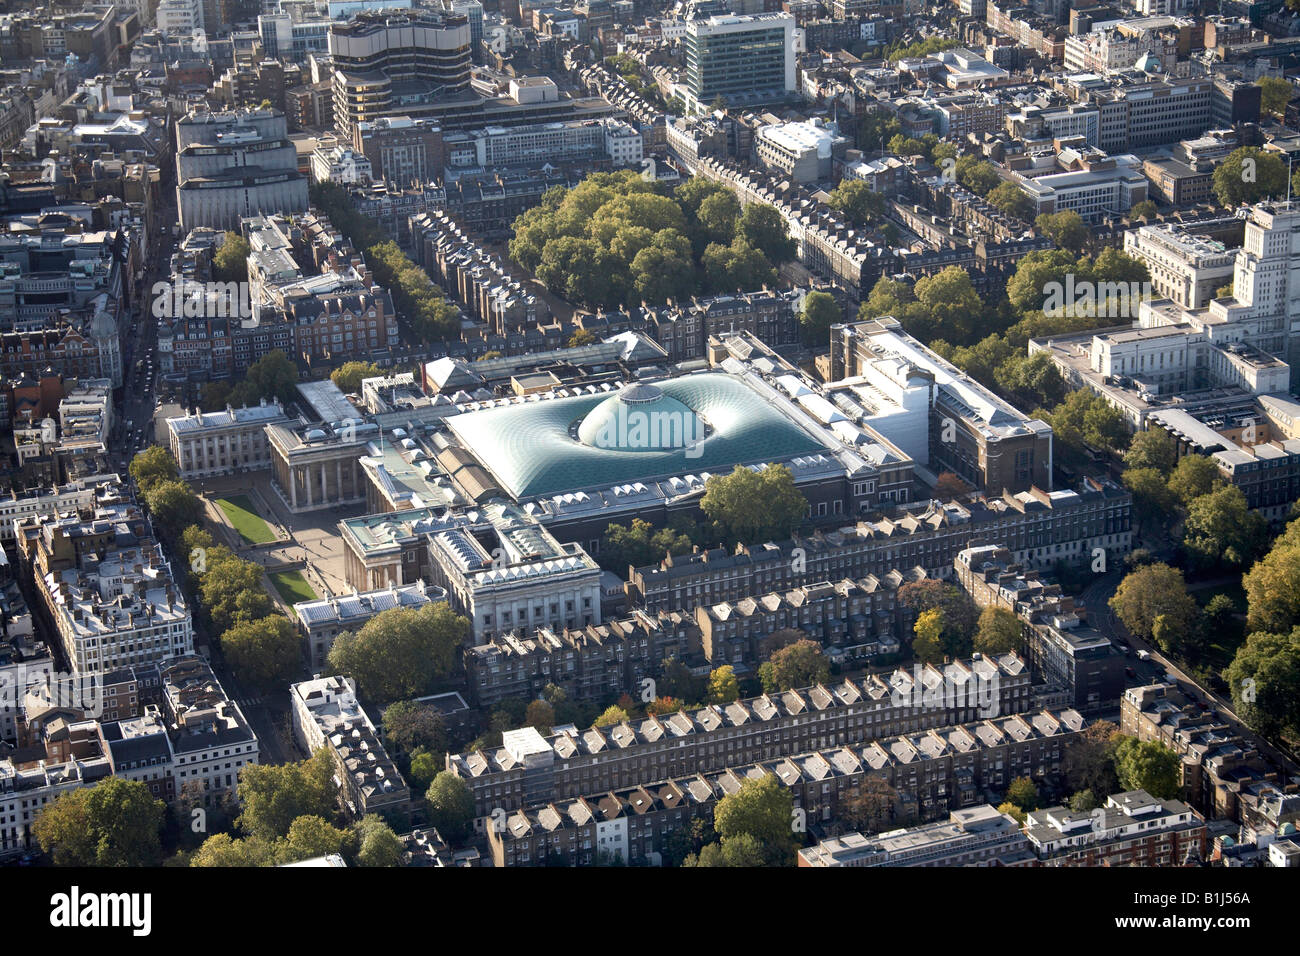 Aerial view south west of The British Museum and inner city buildings Bloomsbury London WC1 England UK - Stock Image